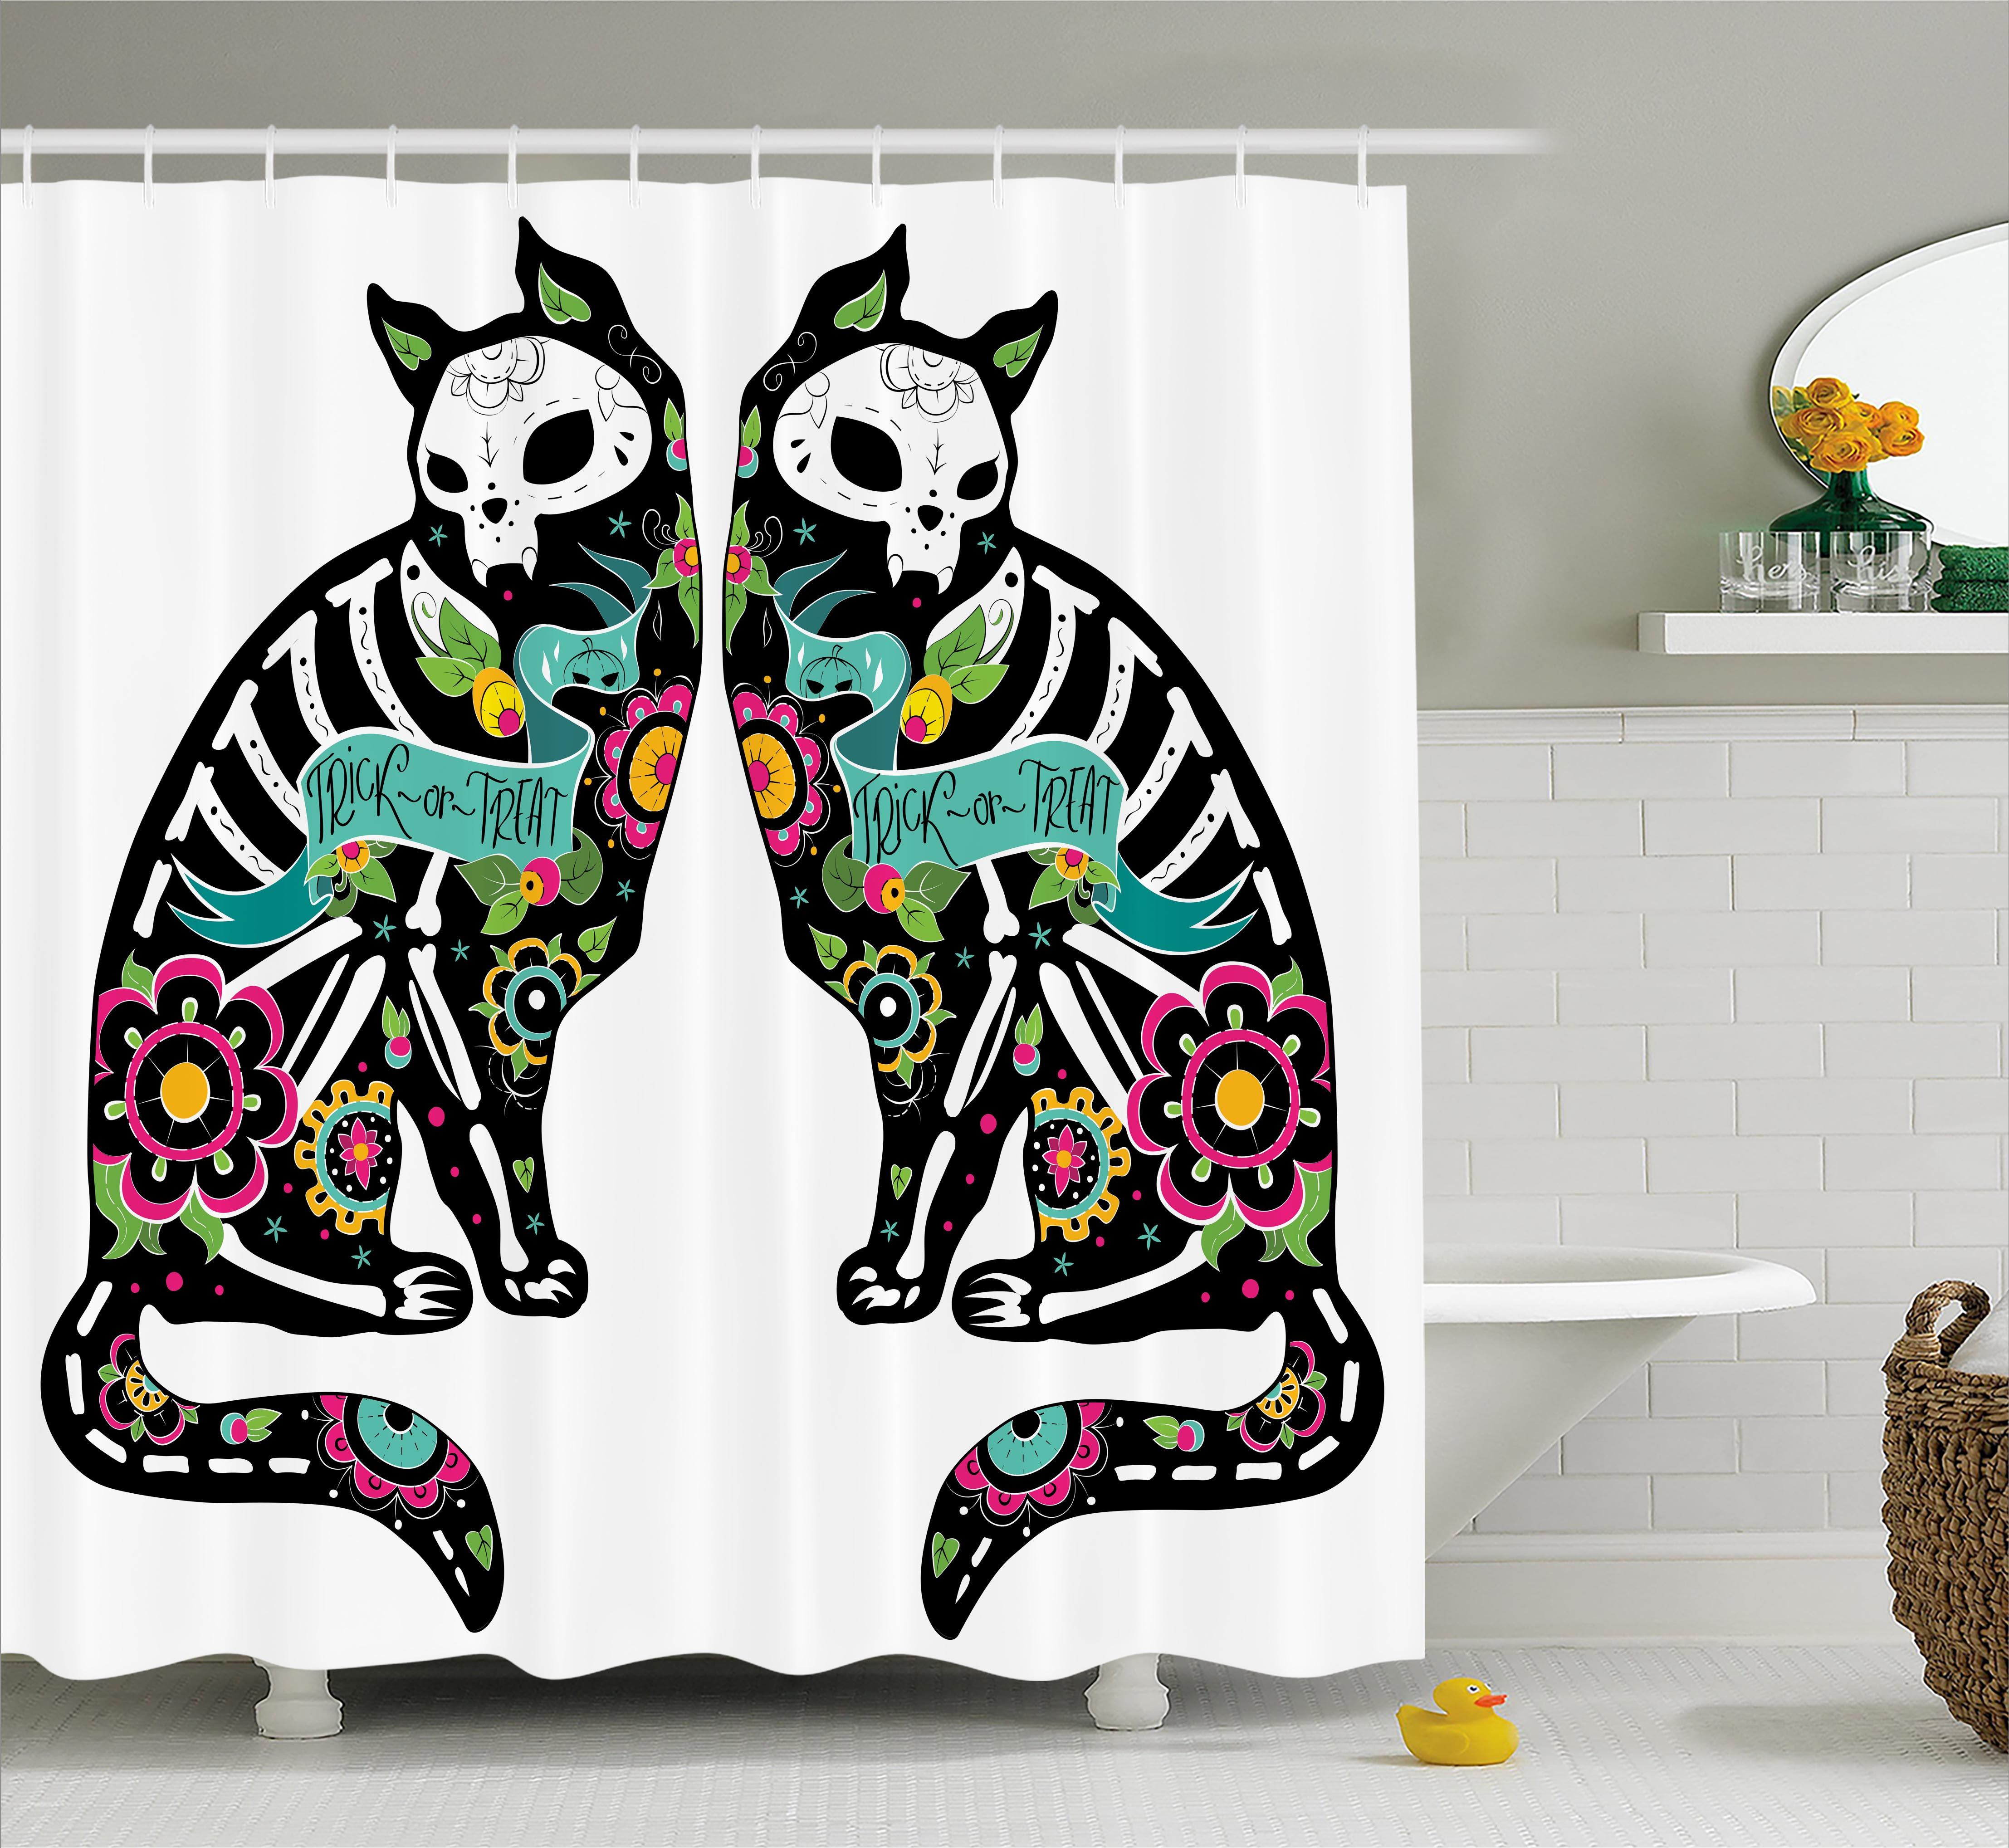 Day Of The Dead Decor Shower Curtain, Skeleton Cats Festive Celebration Spanish Art Print, Fabric Bathroom Set with Hooks, 69W X 70L Inches, Black White Turquoise Pink, by Ambesonne